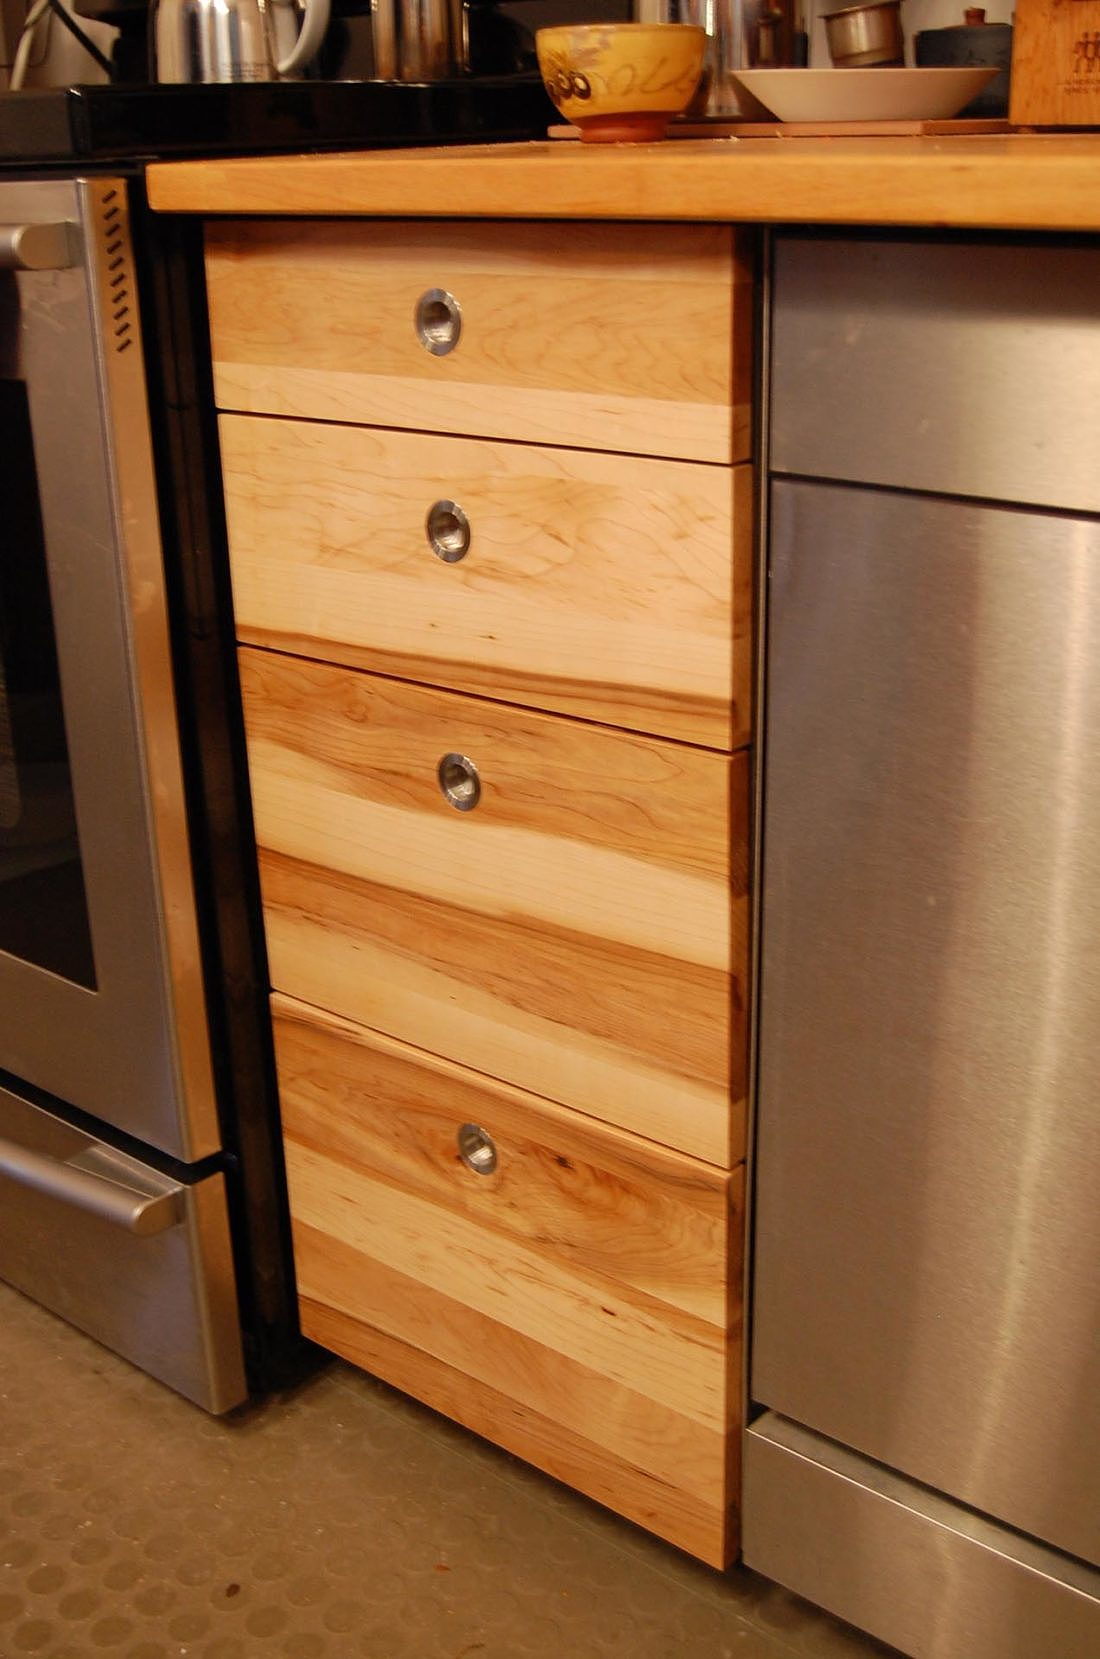 maple-kitchen-cabinets-design-montreal-furniture